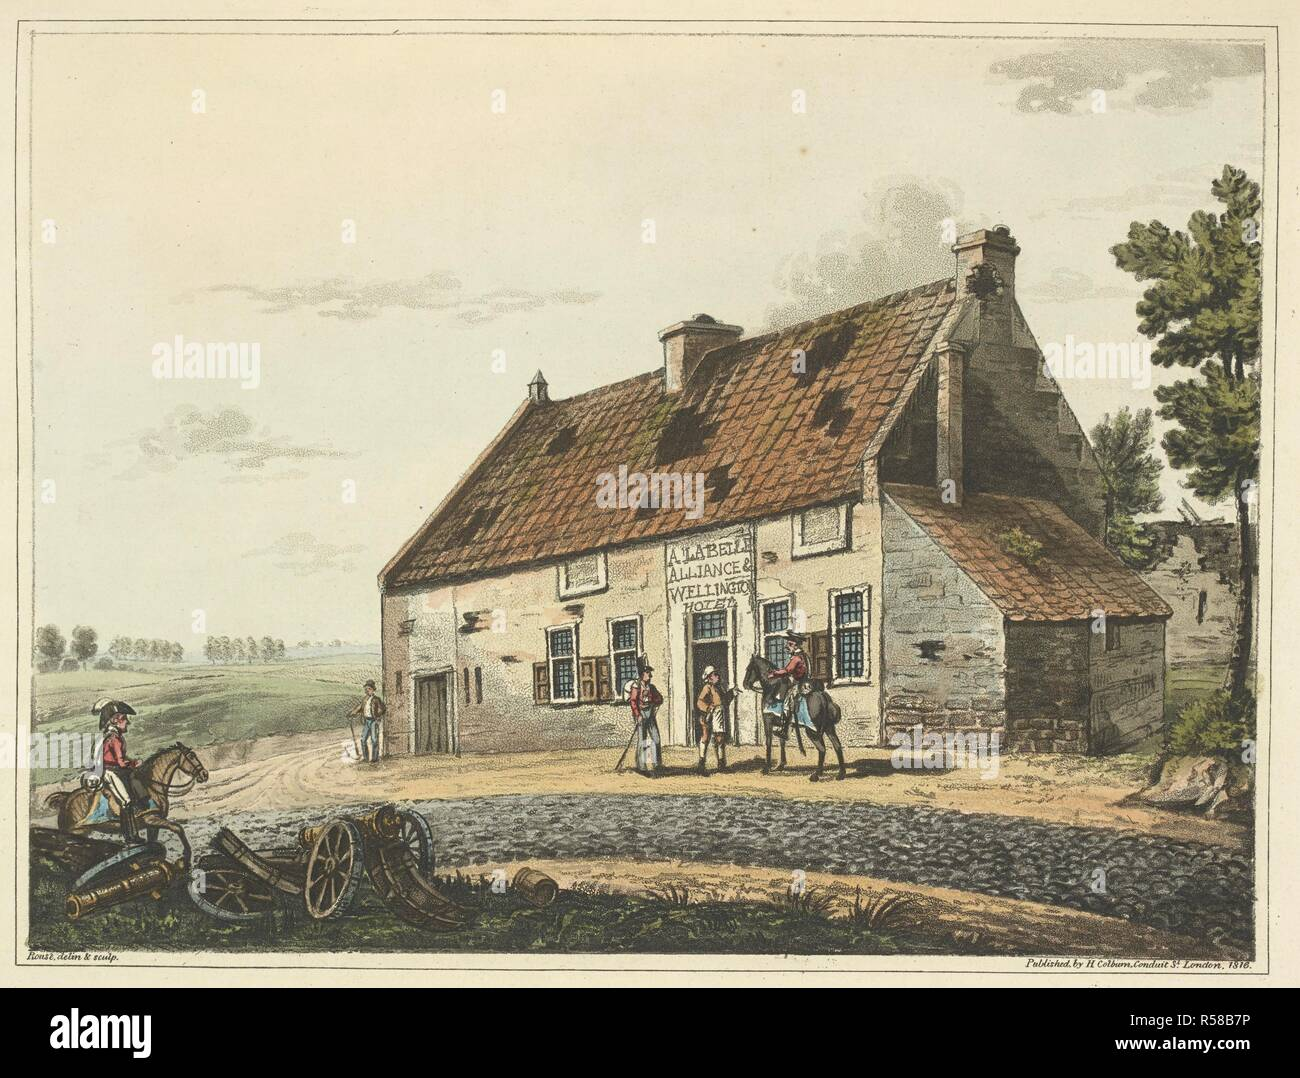 A view of La Belle Alliance. On the morning of June 18, 1815 the inn became Napoleon Bonaparte's headquarters for the Battle of Waterloo. After the battle, the Duke of Wellington and Gebhard Blücher met close to the inn signifying the end of the fighting. An Historical Account of the Campaign in the Netherlands, in 1815, under His Grace the Duke of Wellington, and Marshal Prince Blucher, comprising the battles of Ligny, Quatrebras, and Waterloo; with a detailed narrative of the political events connected with those memorable conflicts down to the surrender of Paris, and the departure of Bonap - Stock Image